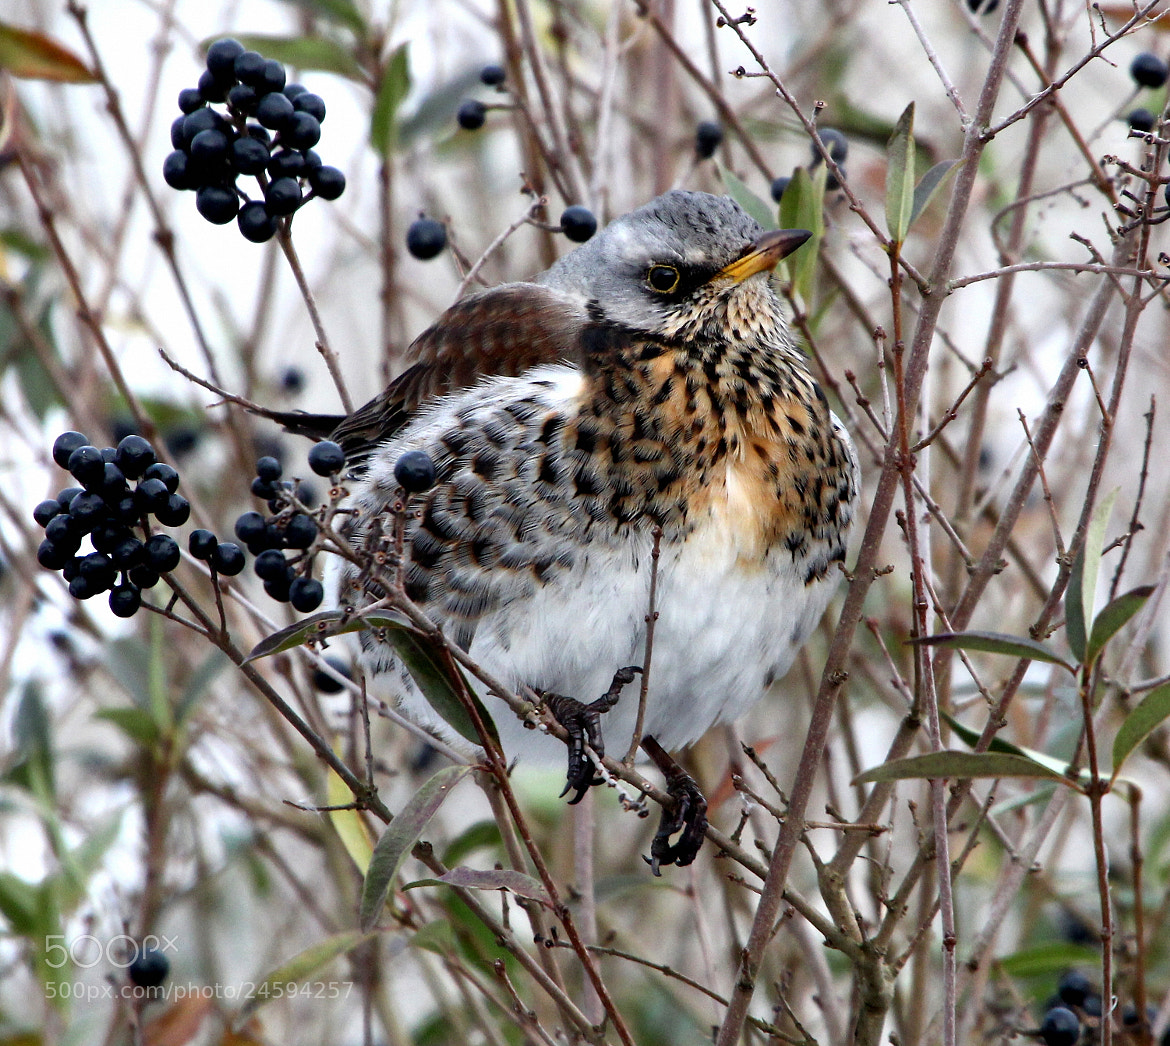 Photograph Fieldfare & Berries by Ger Bosma on 500px